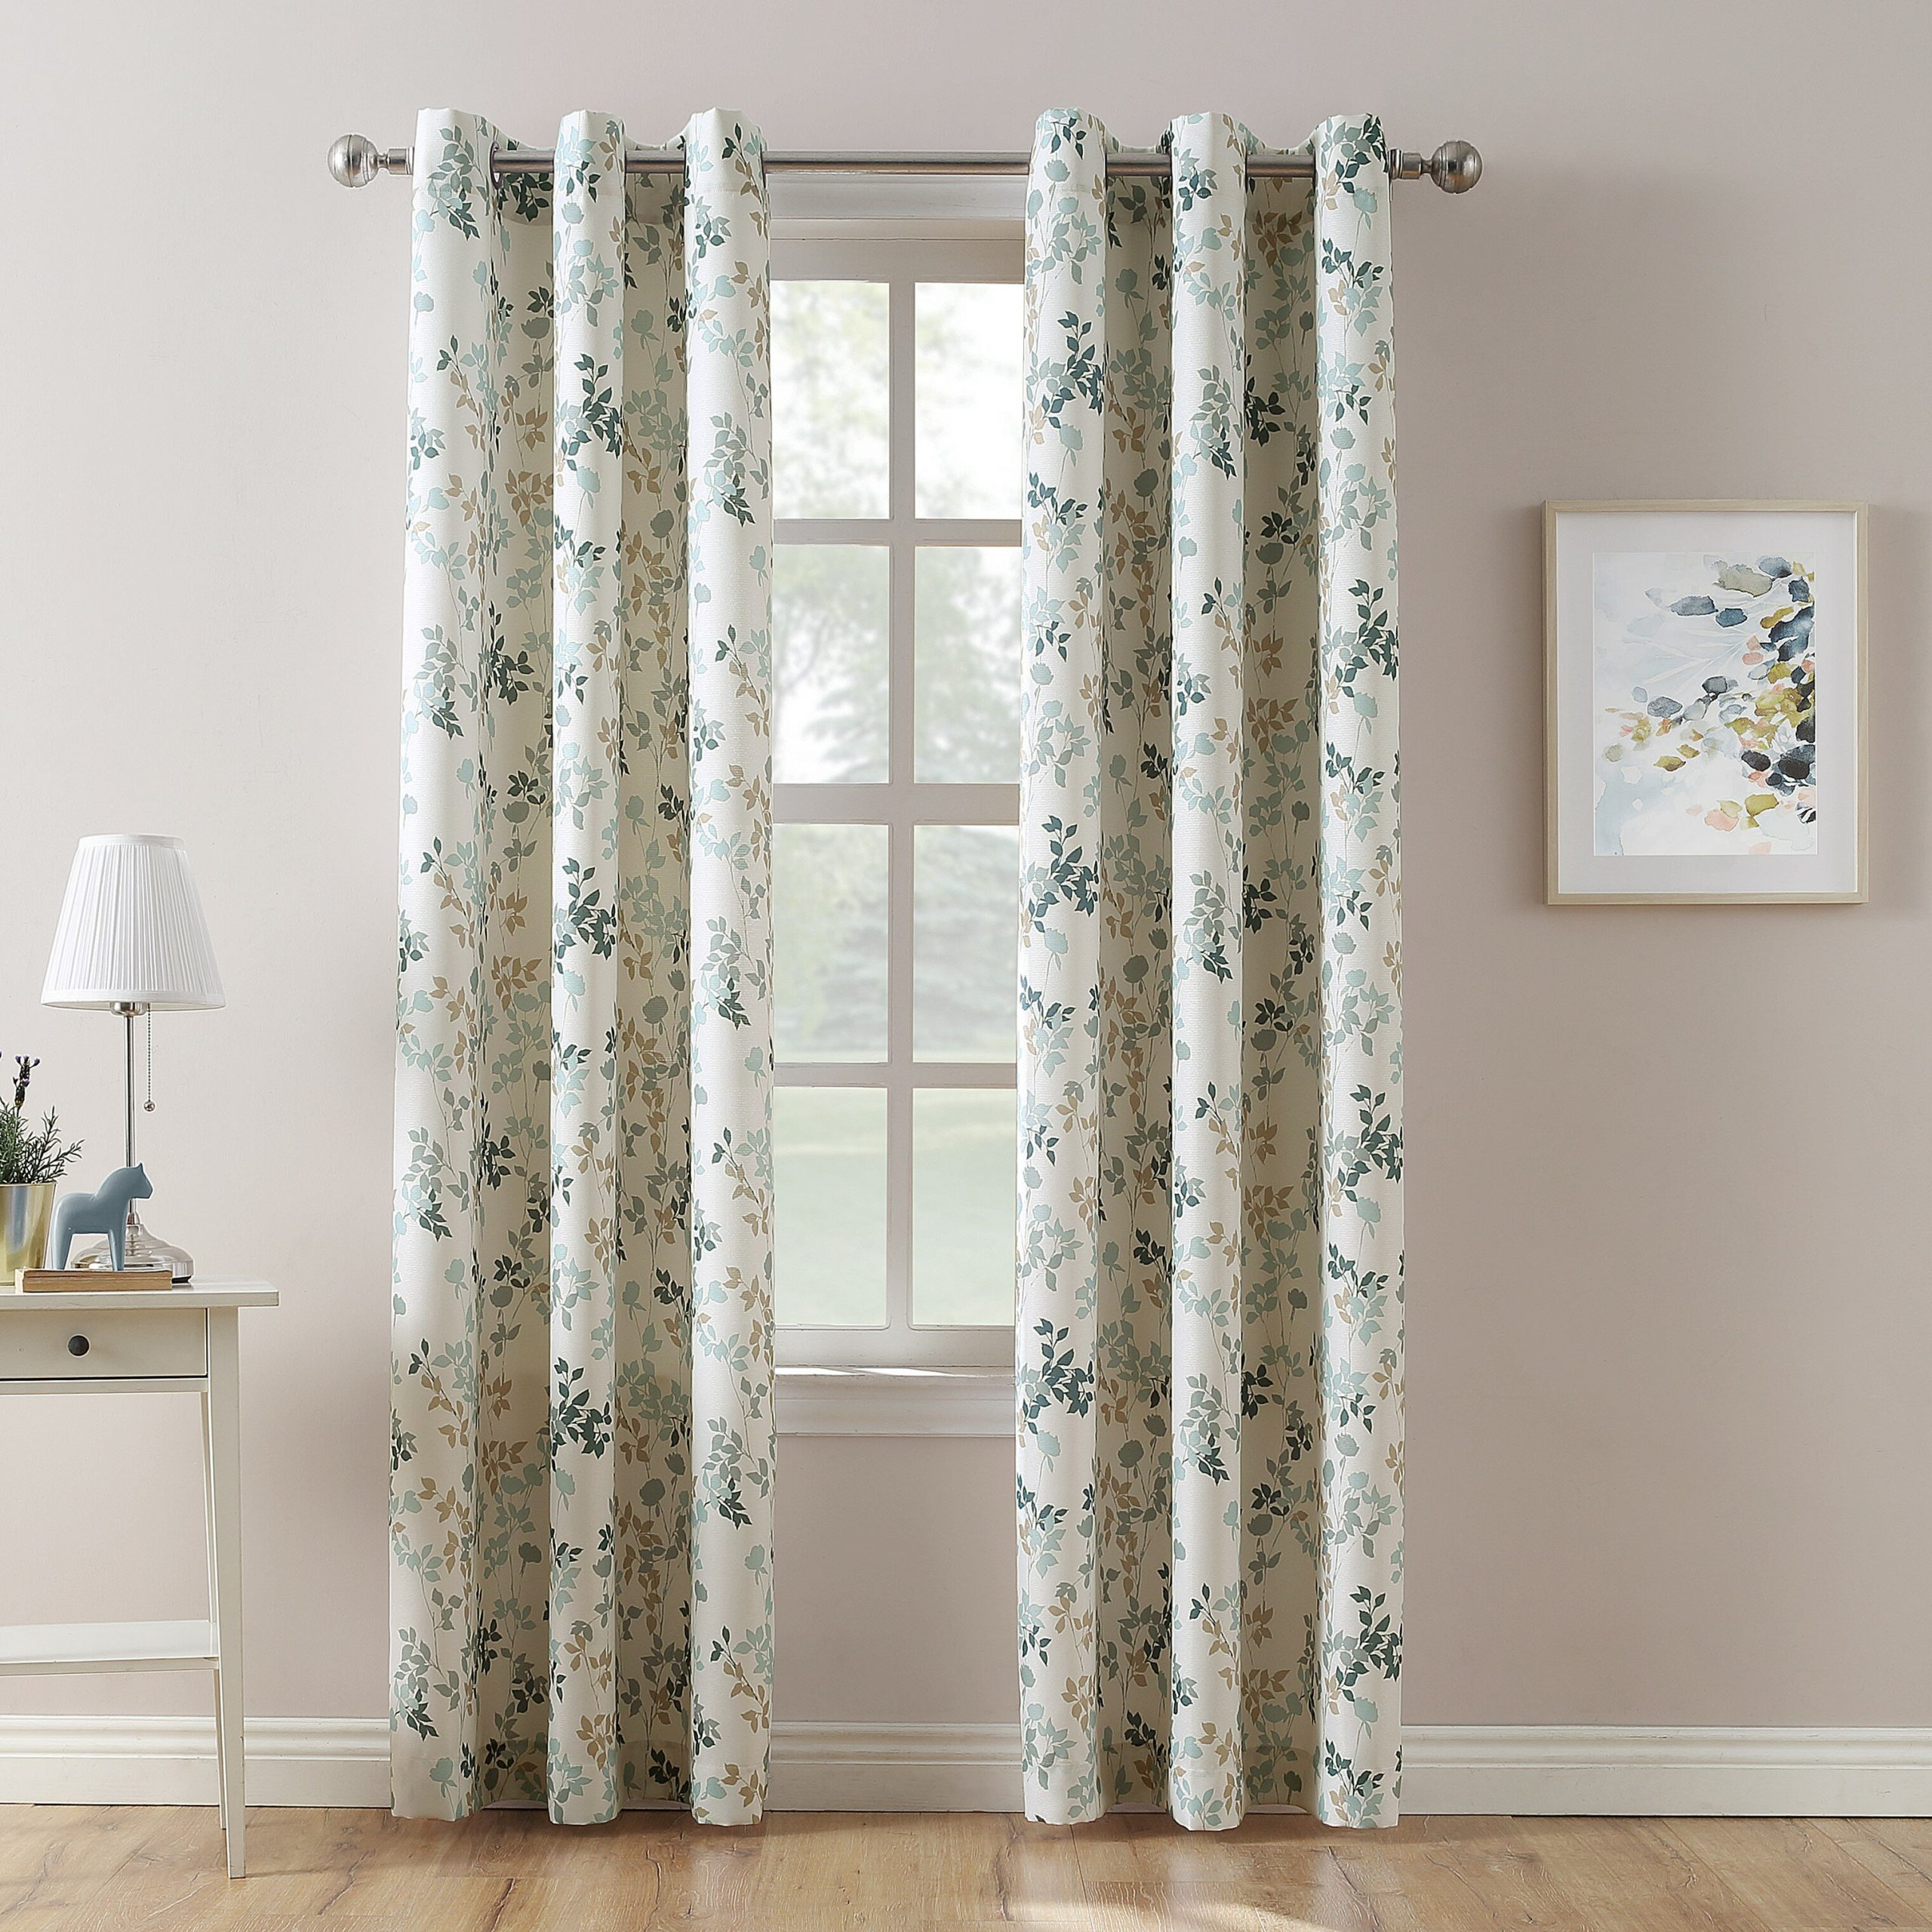 Alex Nature/floral Room Darkening Grommet Single Curtain Panel With Most Popular Overseas Leaf Swirl Embroidered Curtain Panel Pairs (View 17 of 21)